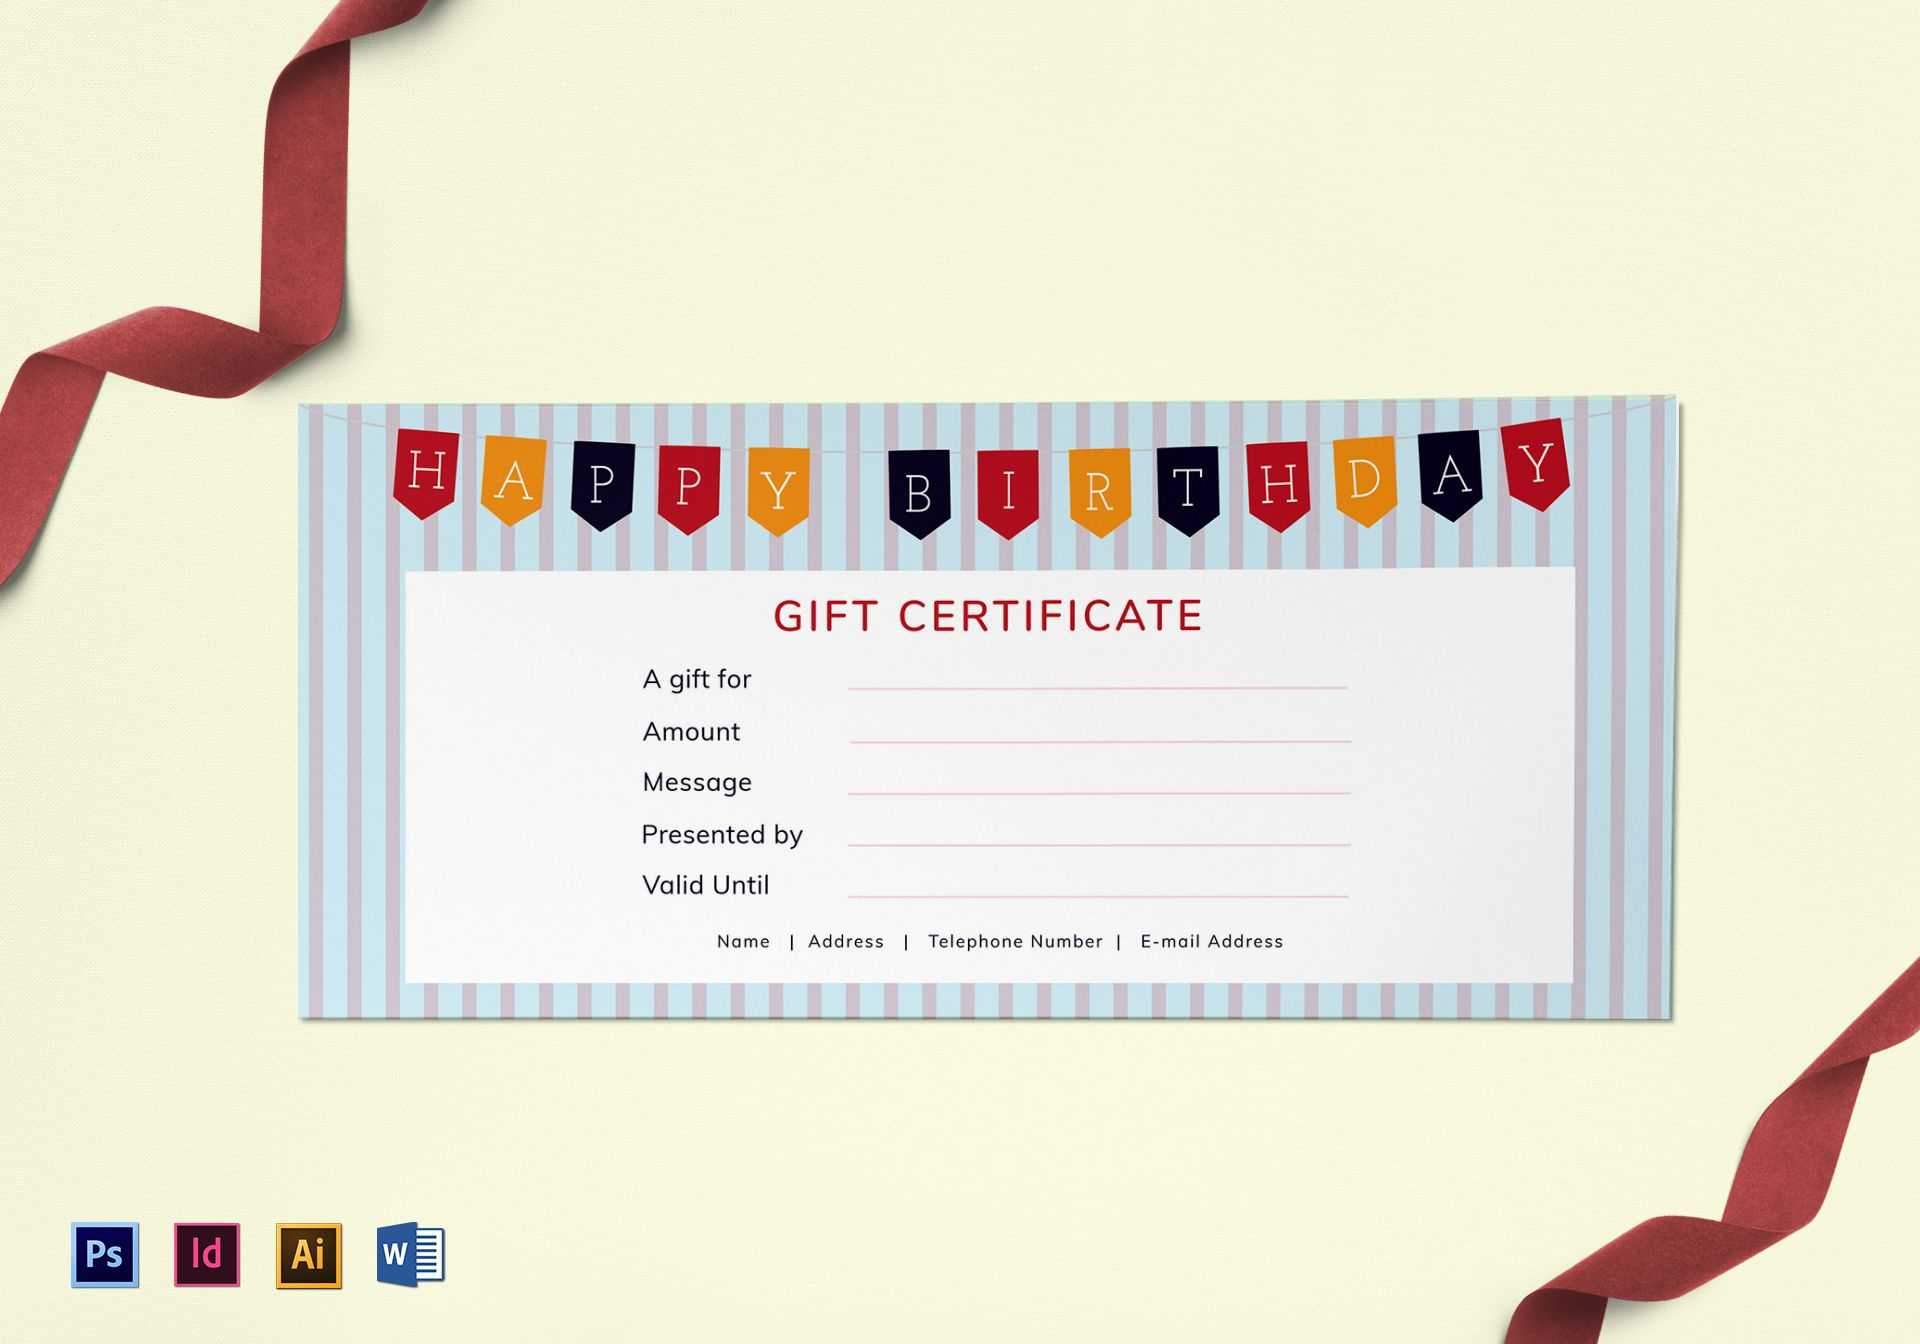 Happy Birthday Gift Certificate Template In Gift Certificate Template Photoshop